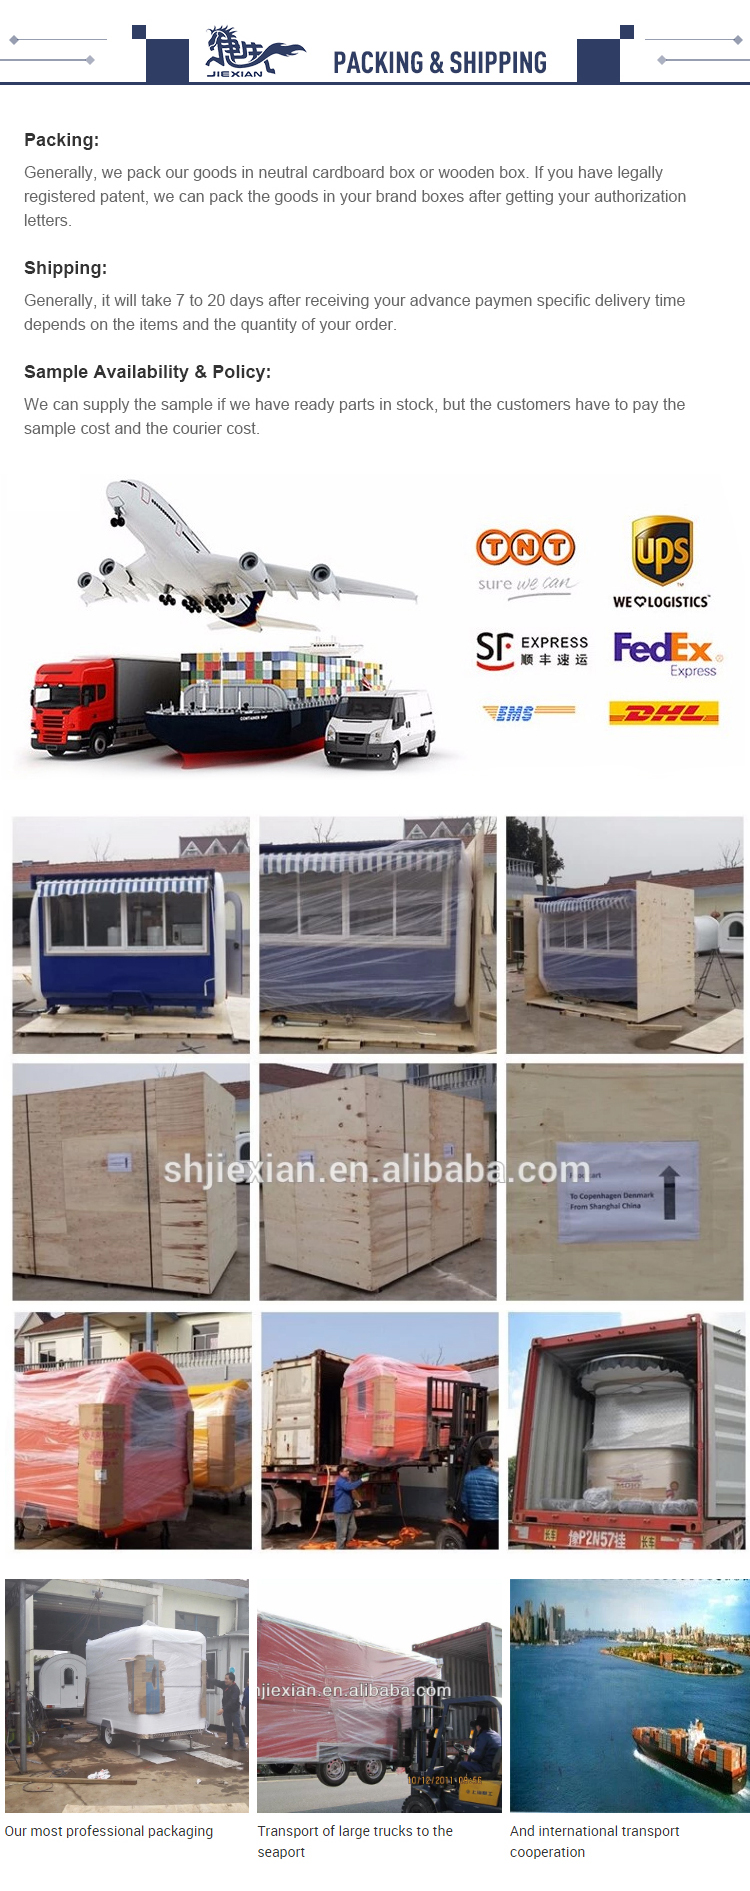 JX-BT400 Commercial shawarma food trailer mobile airstream bbq cream crepe food truck